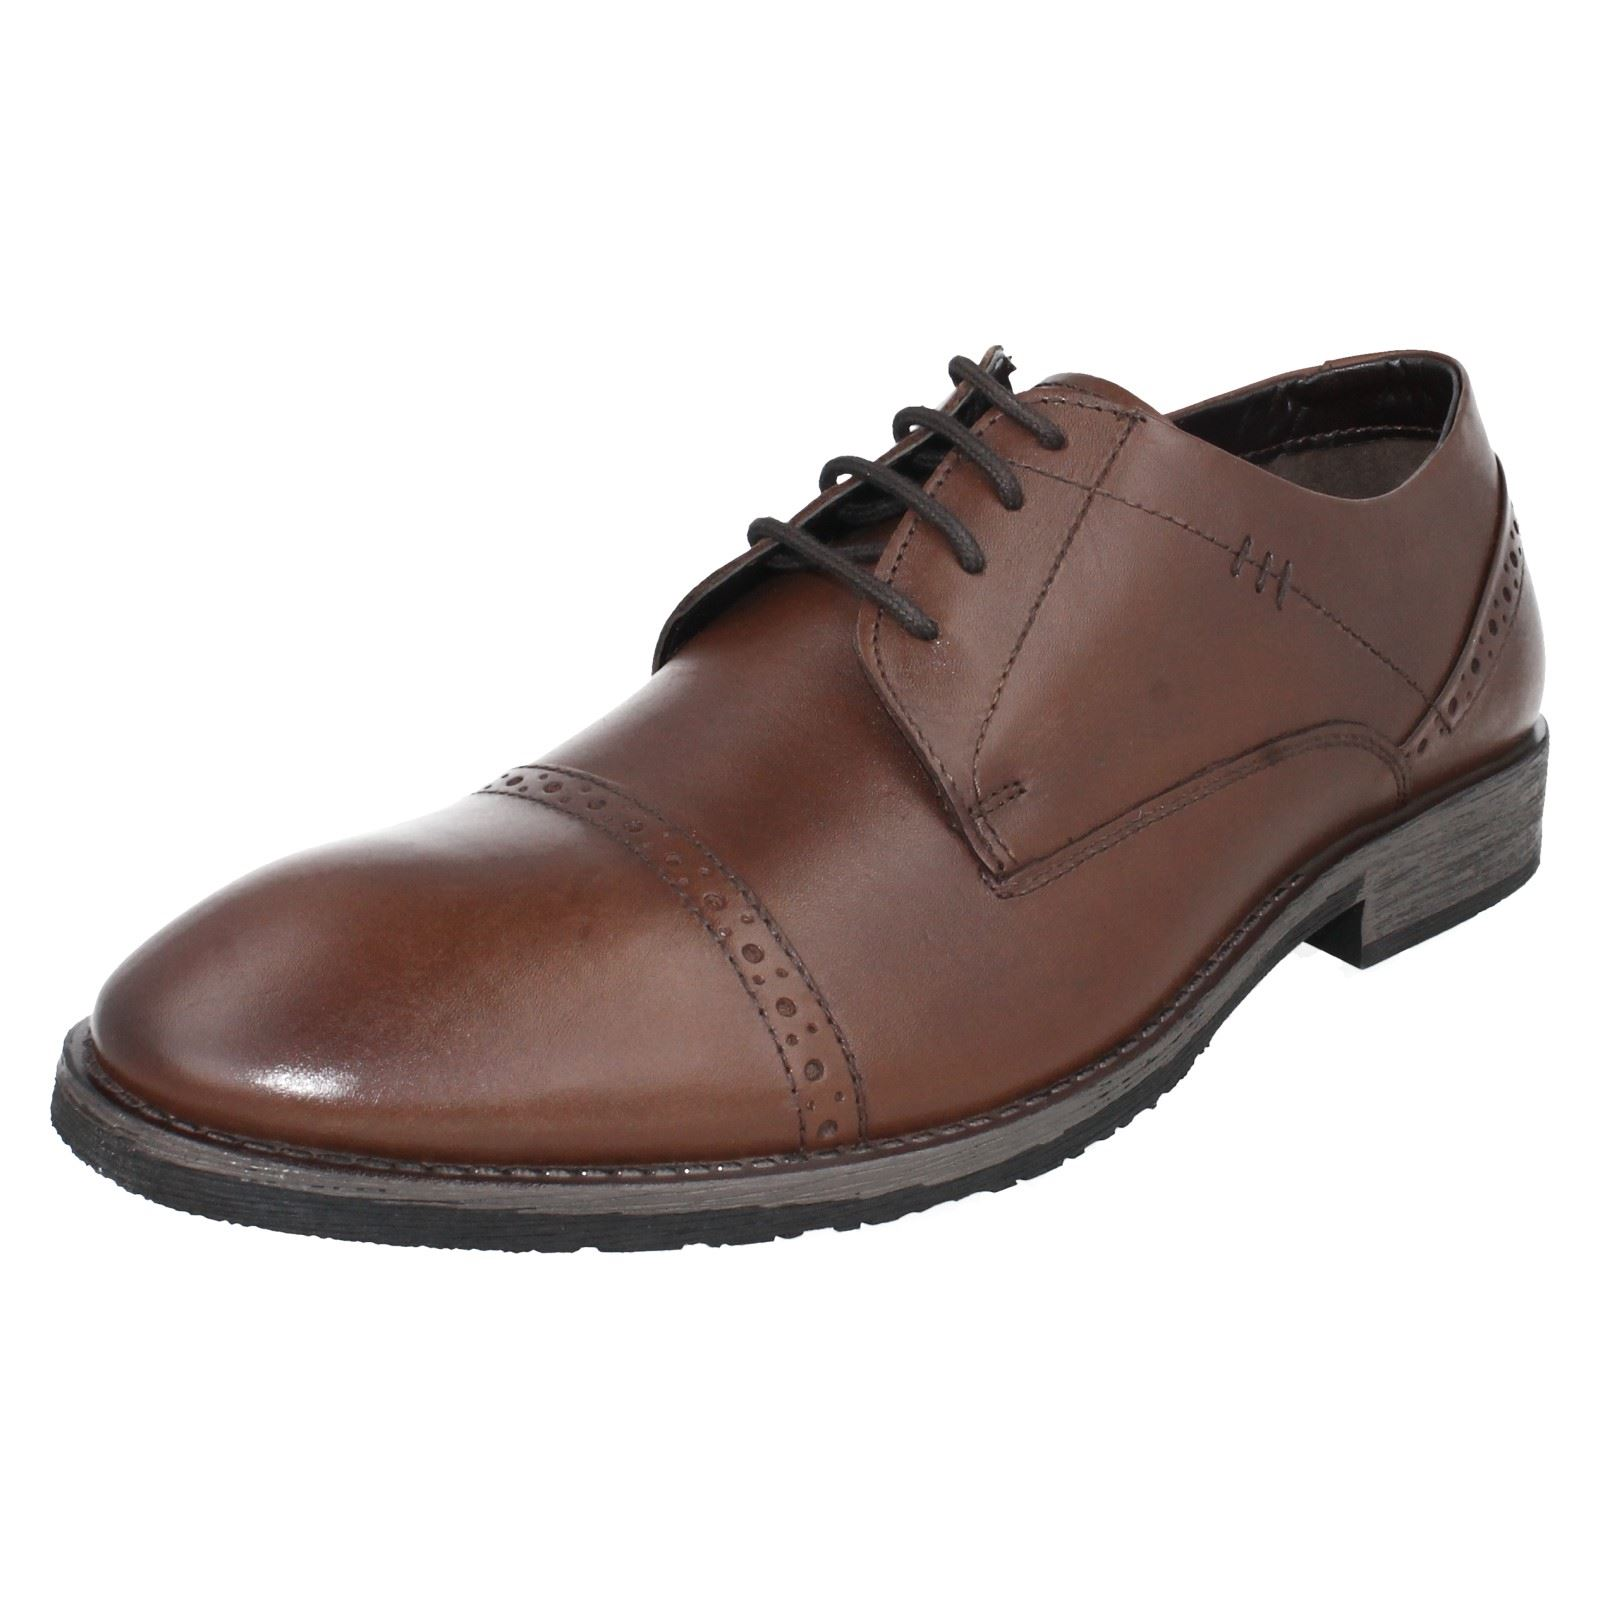 Herren Hush Puppies Schuhe The Style Craig LUGANDA